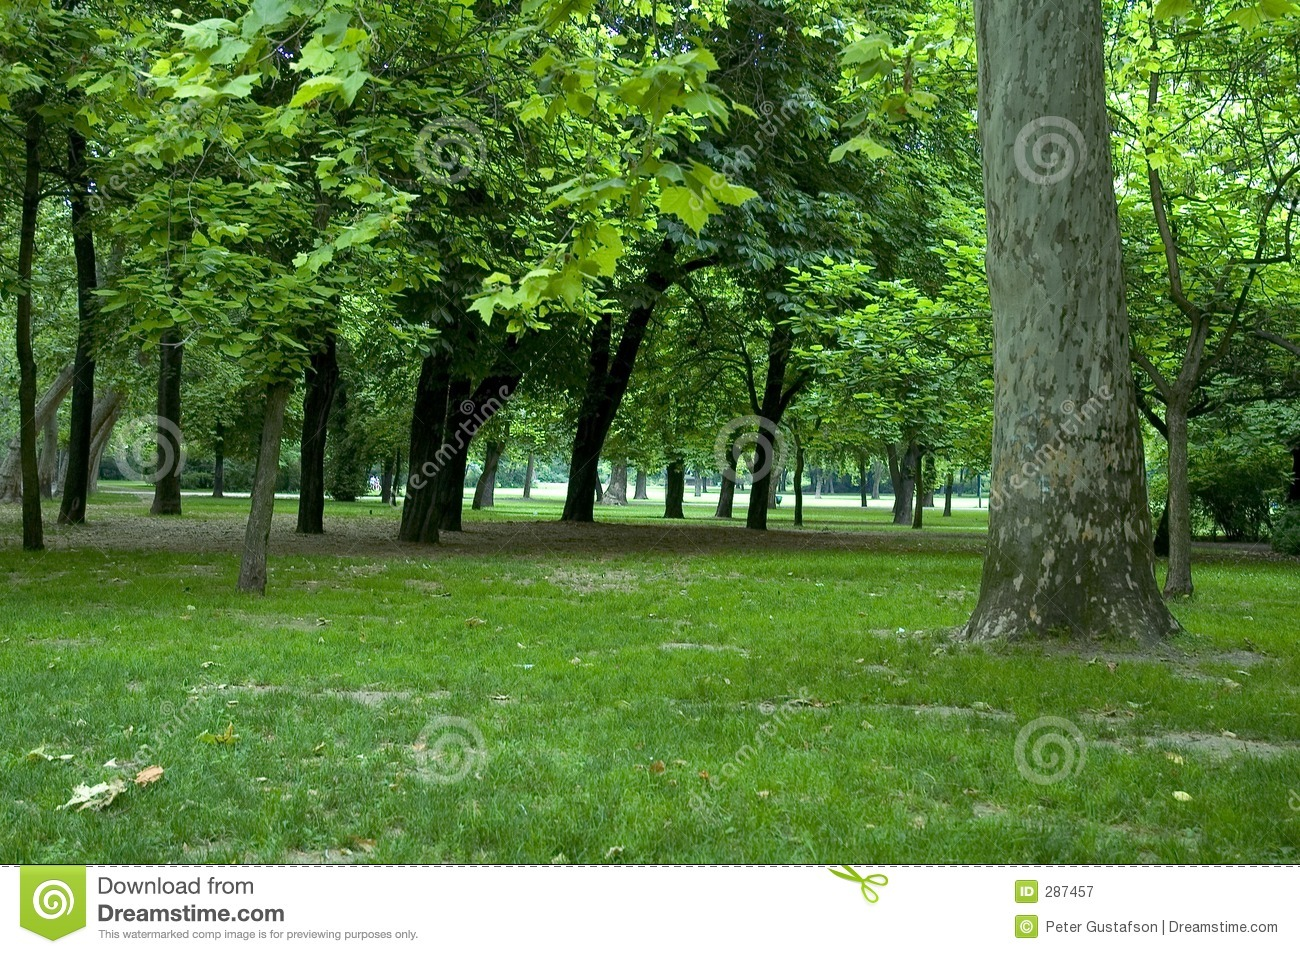 Trees in park 1